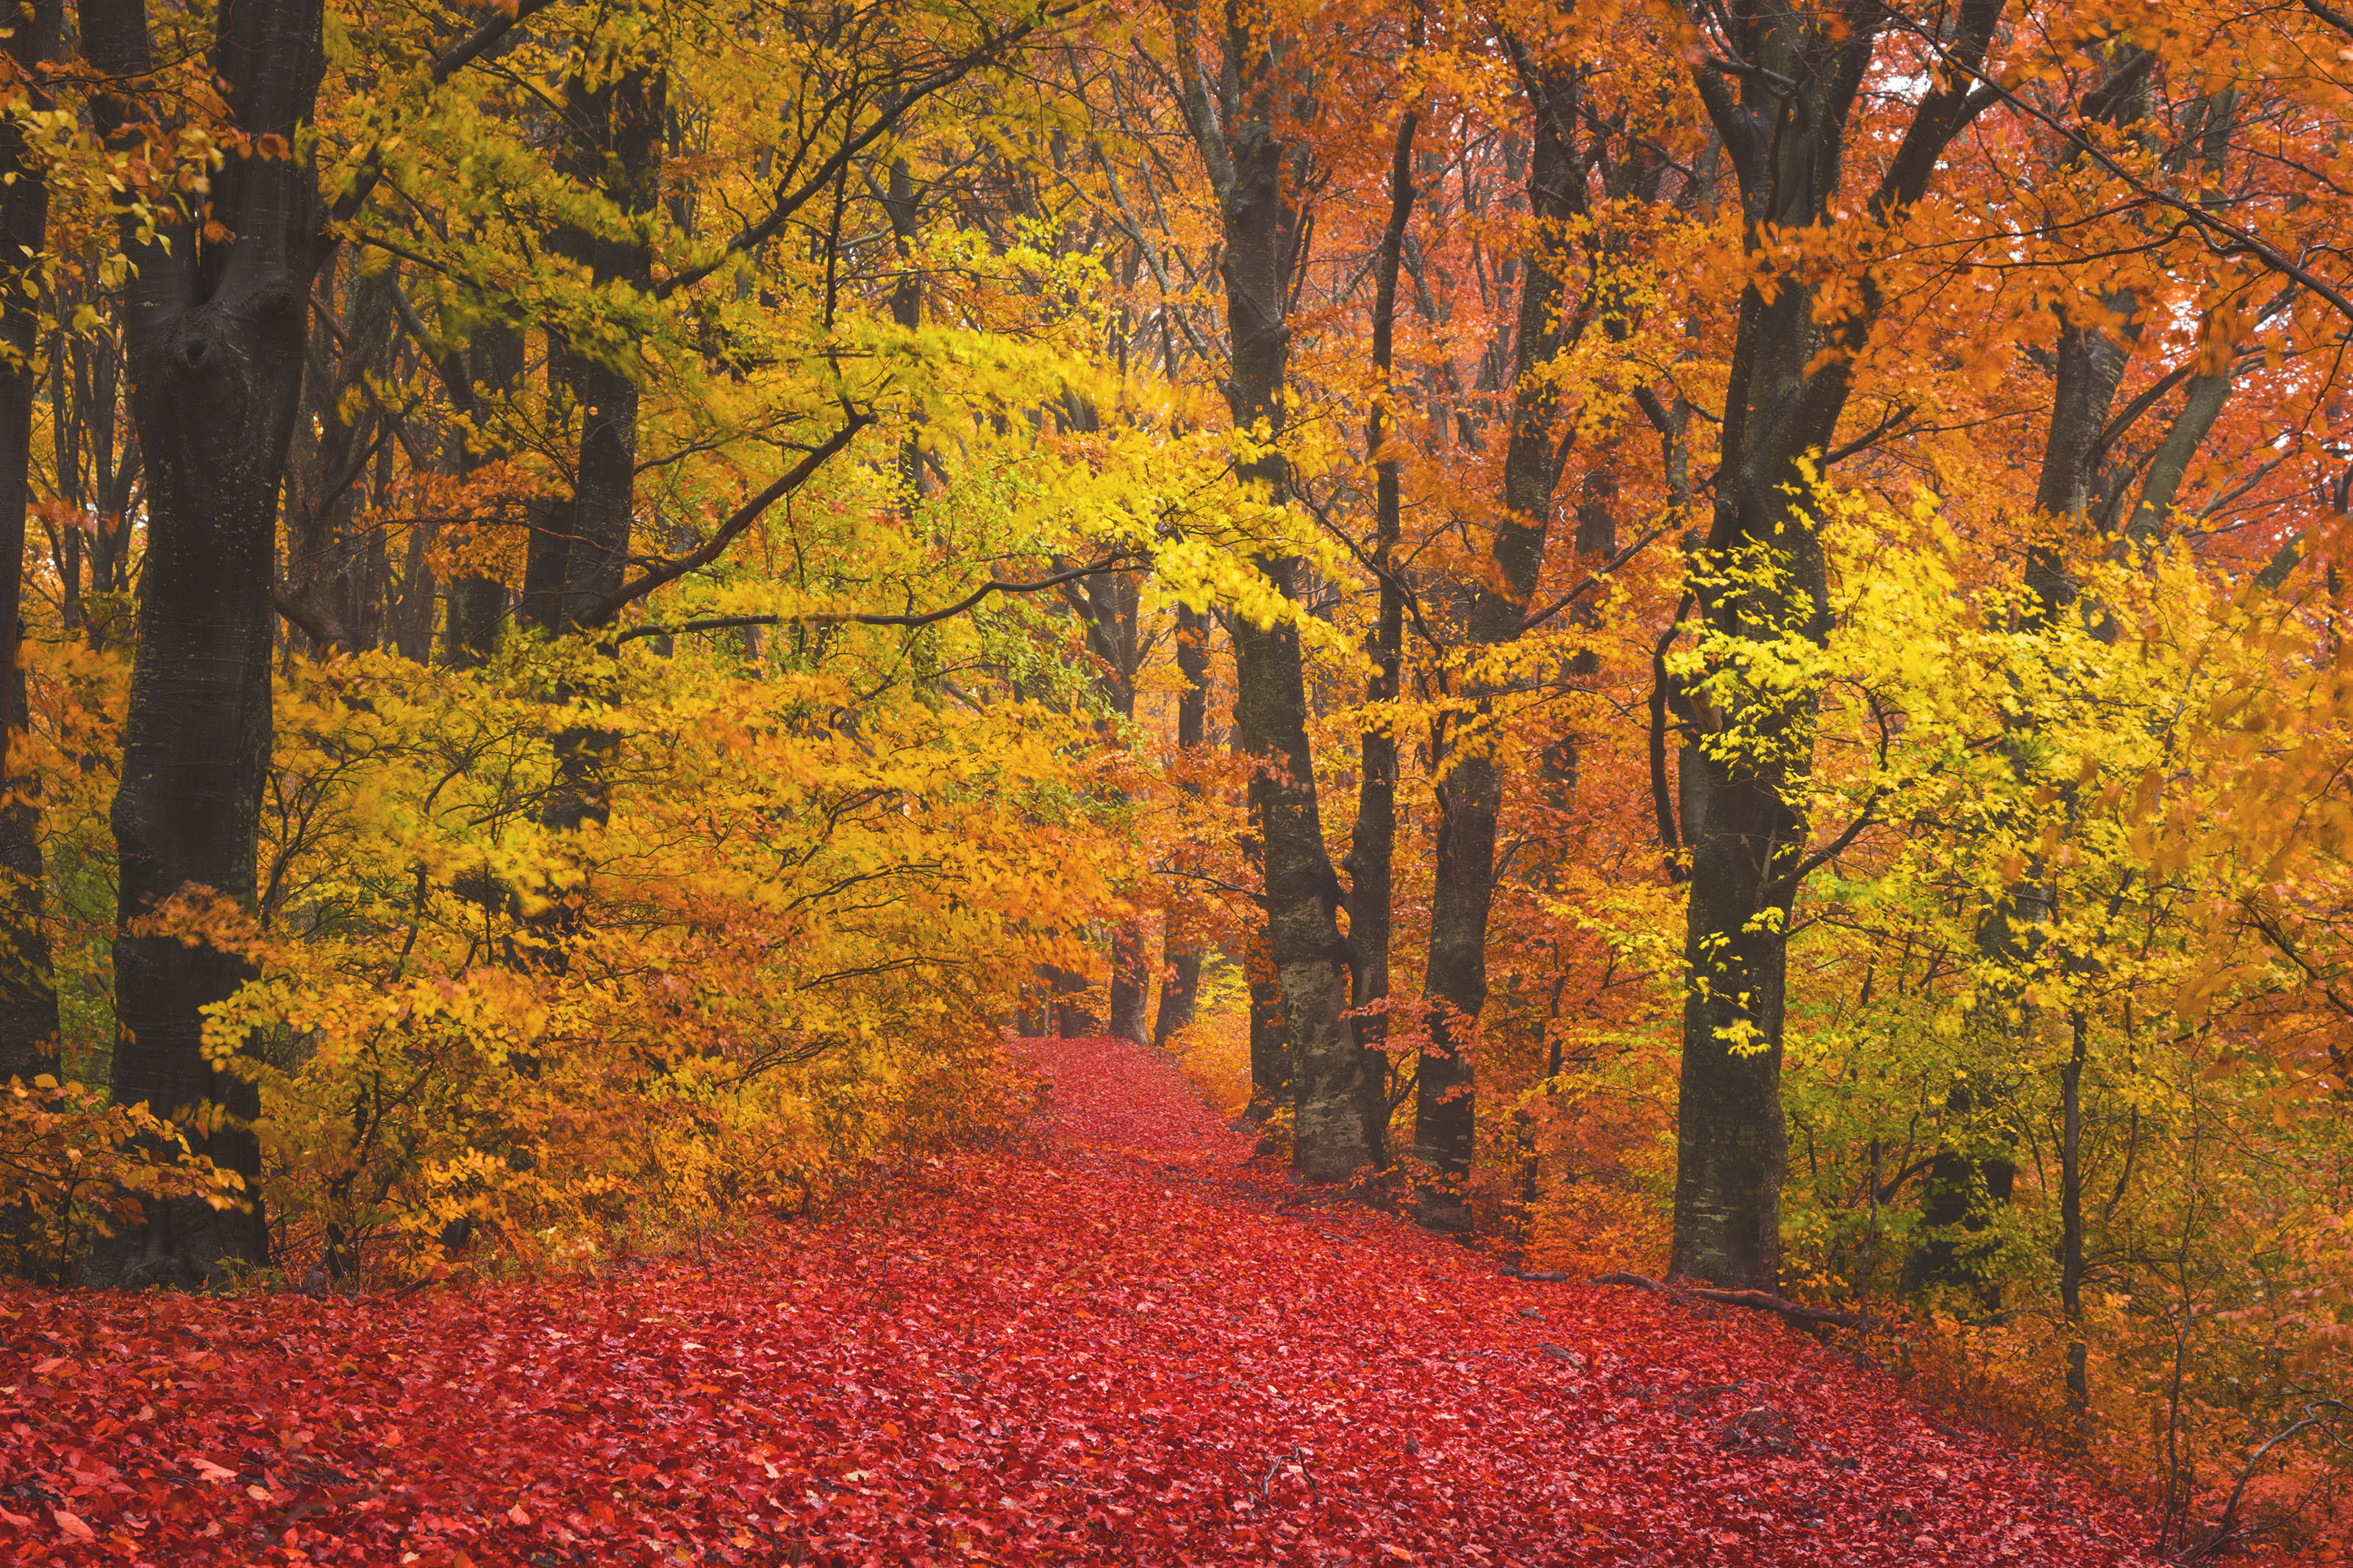 autumn-landscape-in-the-forest